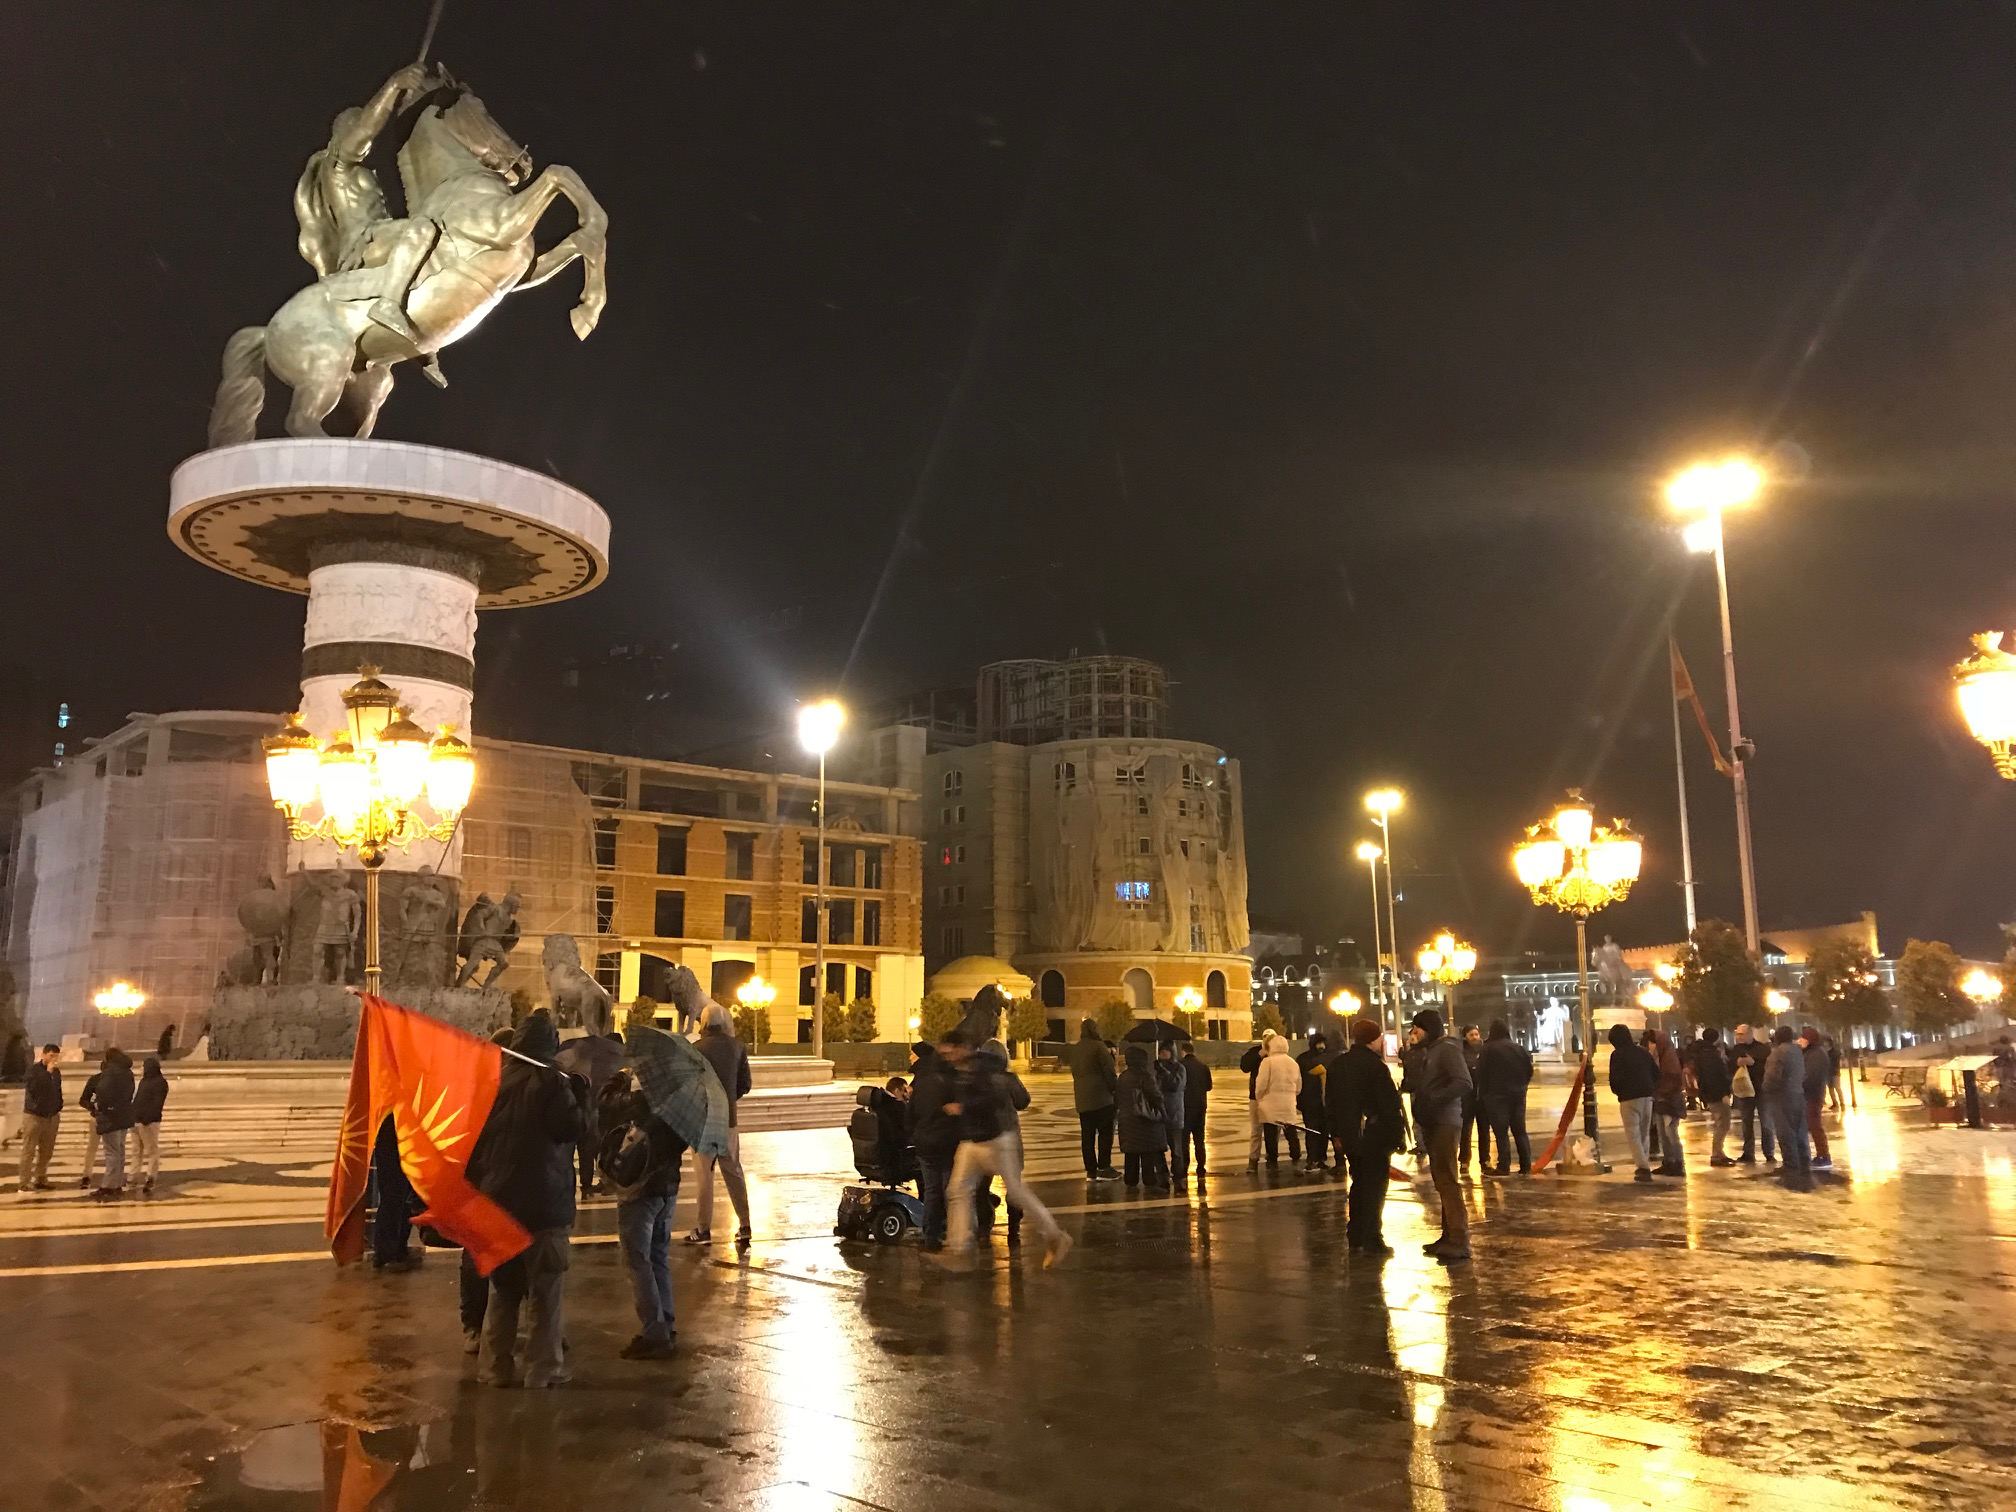 Fake news about removal of Alexander the Great statue from main Skopje Sq